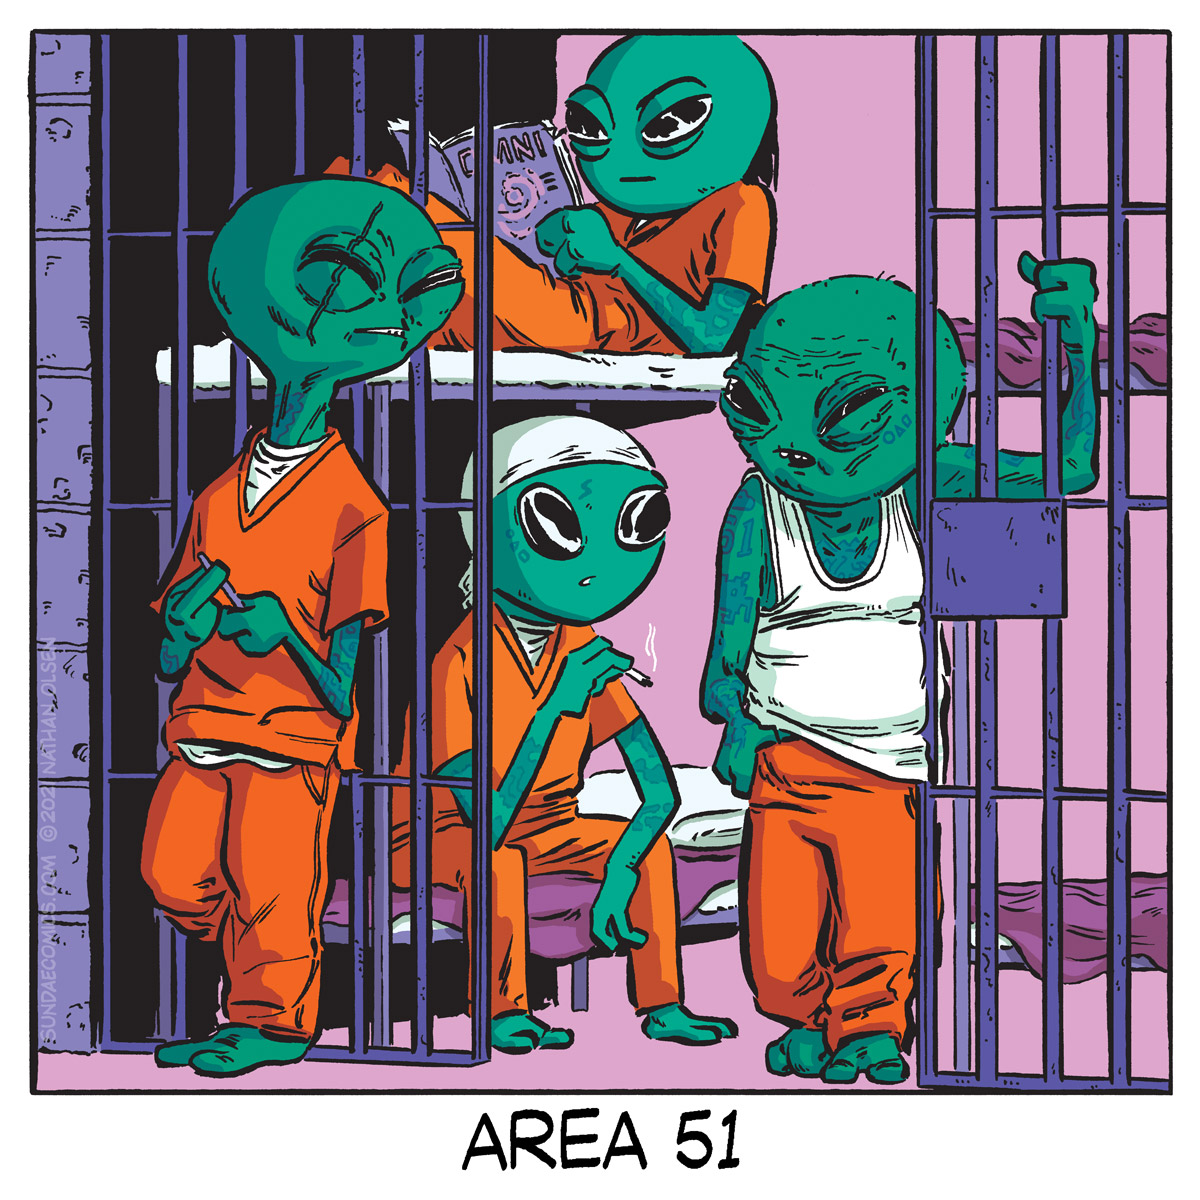 A really funny webcomic about what life is probably like in the secret alien holding facility at Area 51.